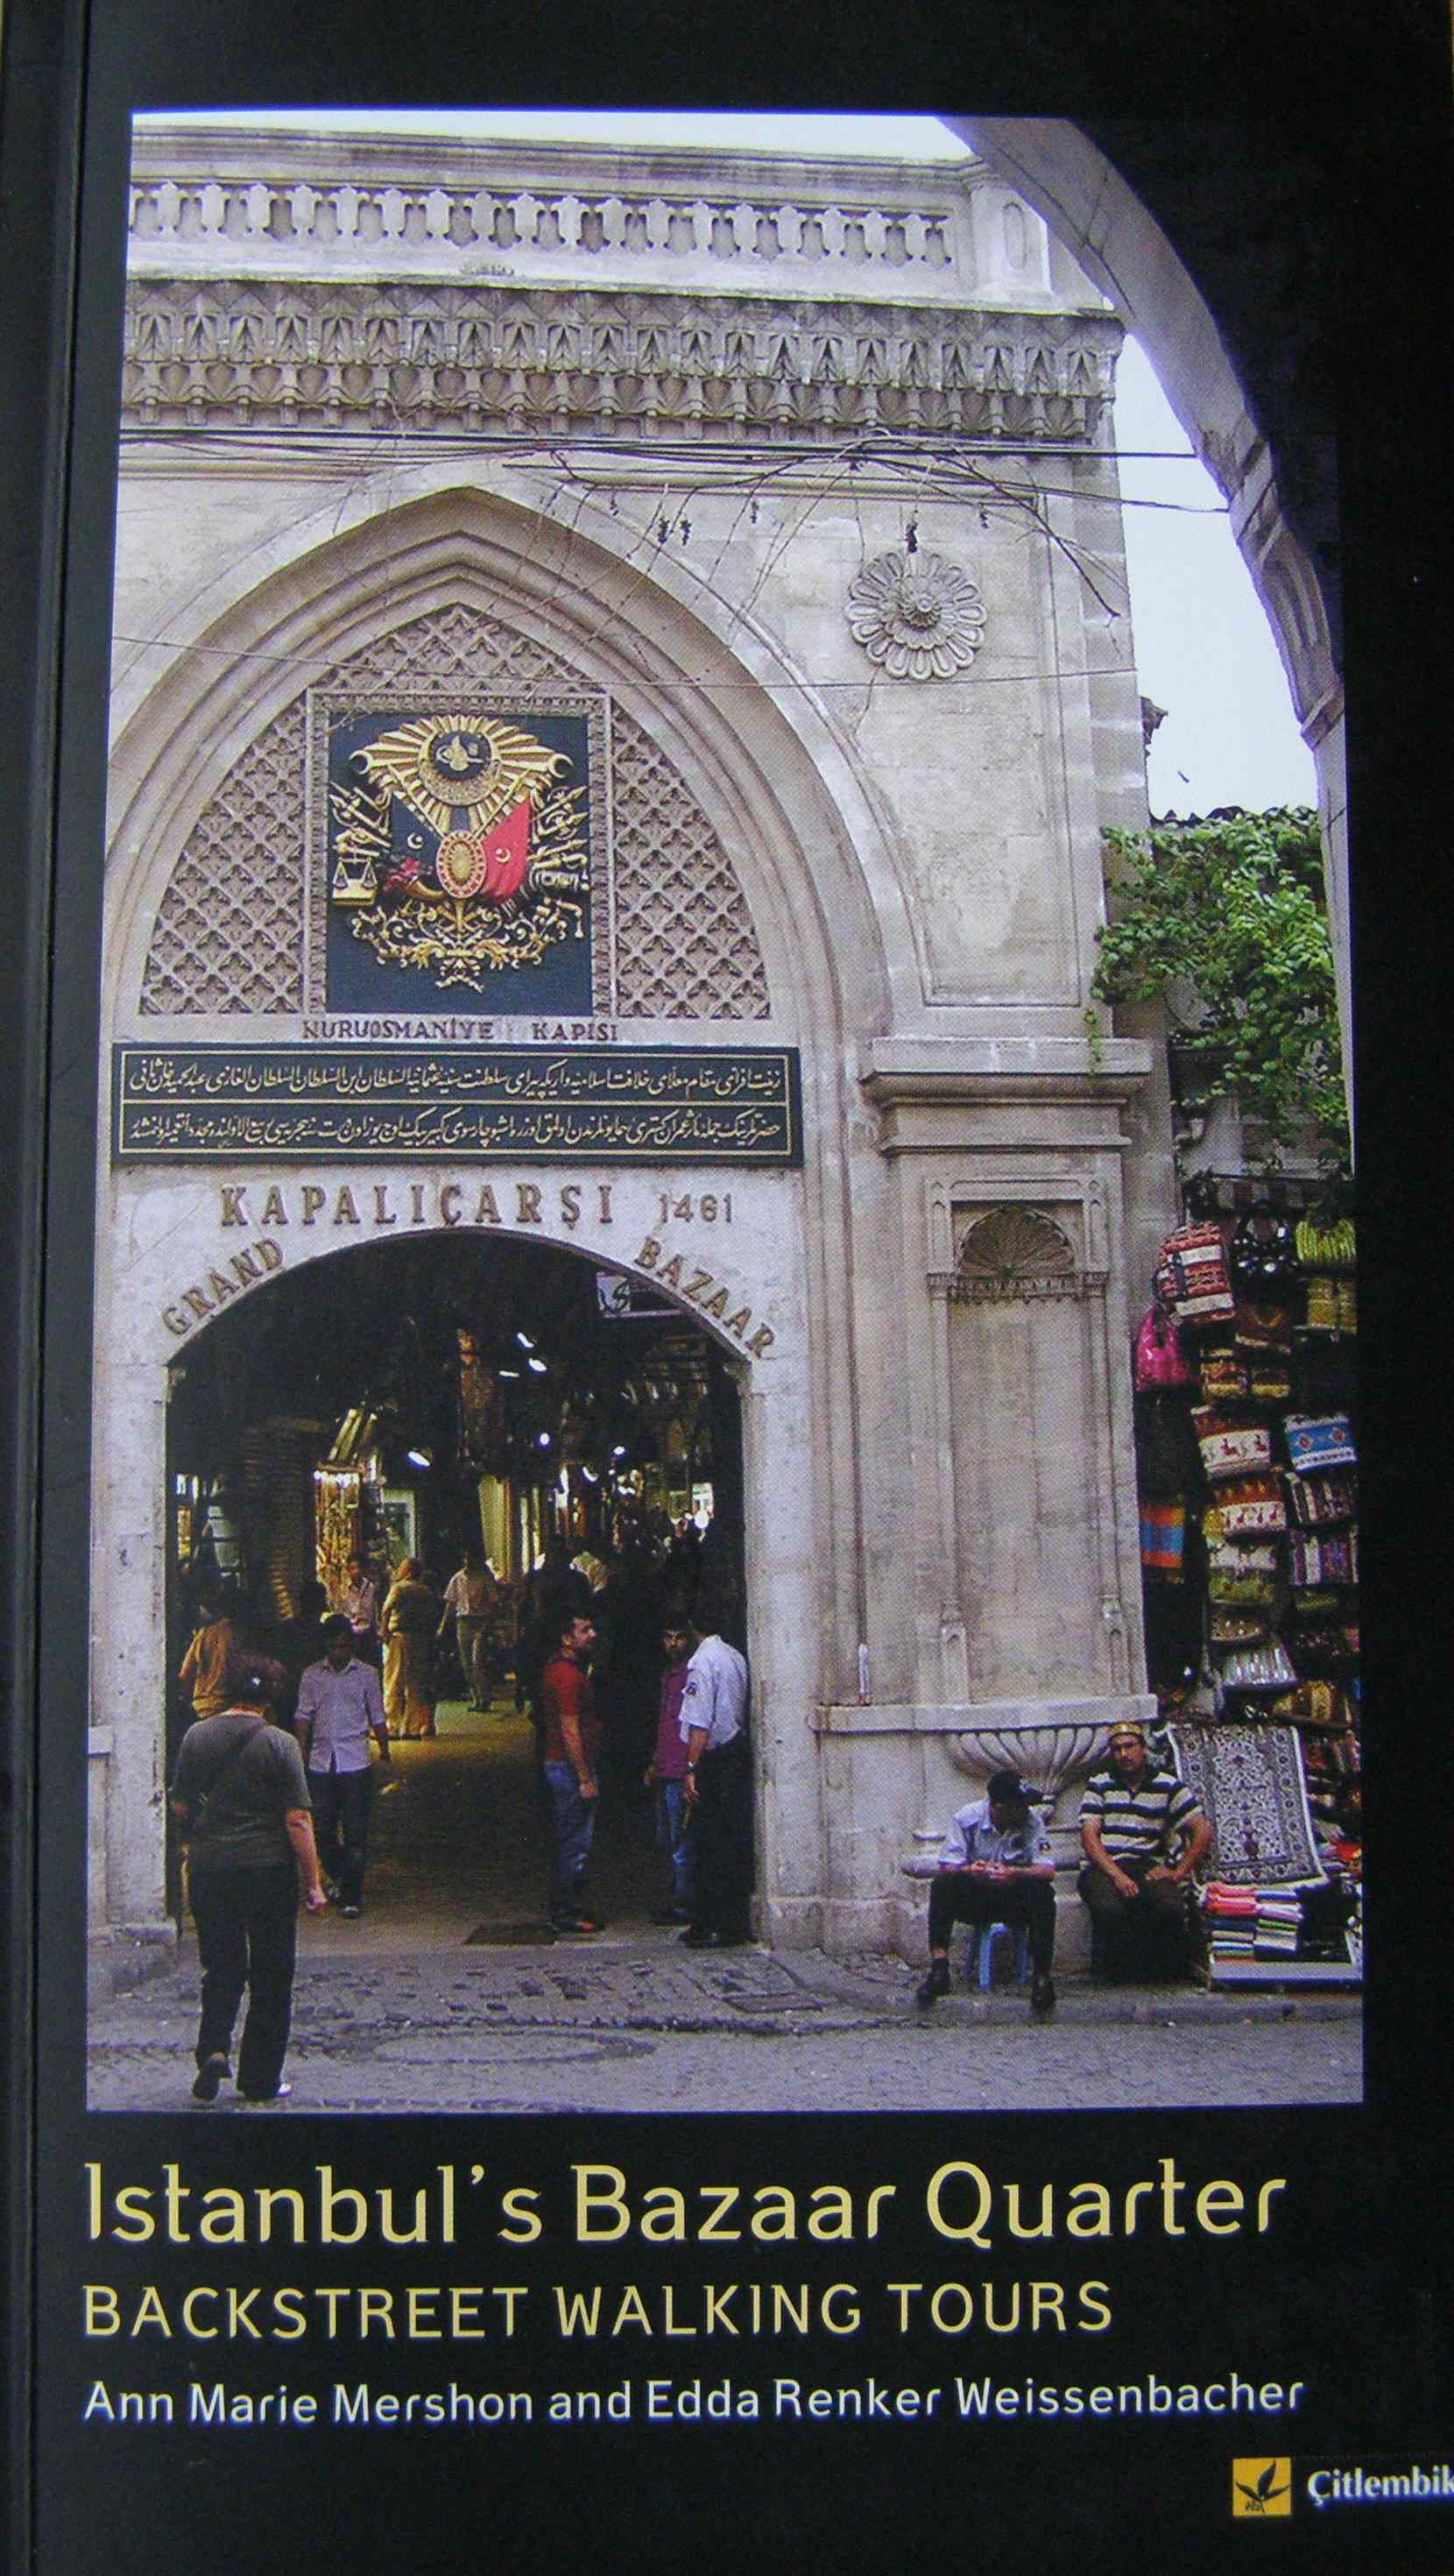 Istanbul's Bazaar Quarter:Backstreet Walking Tours - Istanbul has always been a center of commerce, thanks to its location on the Bosphorus, the gateway between the Mediterranean and the Black Sea—the West and the East. The world-renowned Grand Bazaar sits high on a hill with centuries-old markets and hans (city caravansarays) scattered down the hill to the Egyptian Bazaar, also known as the Spice Bazaar. Edda explored these streets for years, guiding historical walking tours that are now available in book form.Ta-Da! Istanbul's Bazaar Quarter, Backstreet Walking Tours offers four self-guided walking tours through Istanbul's ancient Bazaar Quarter, the next best thing to having Edda as your guide.